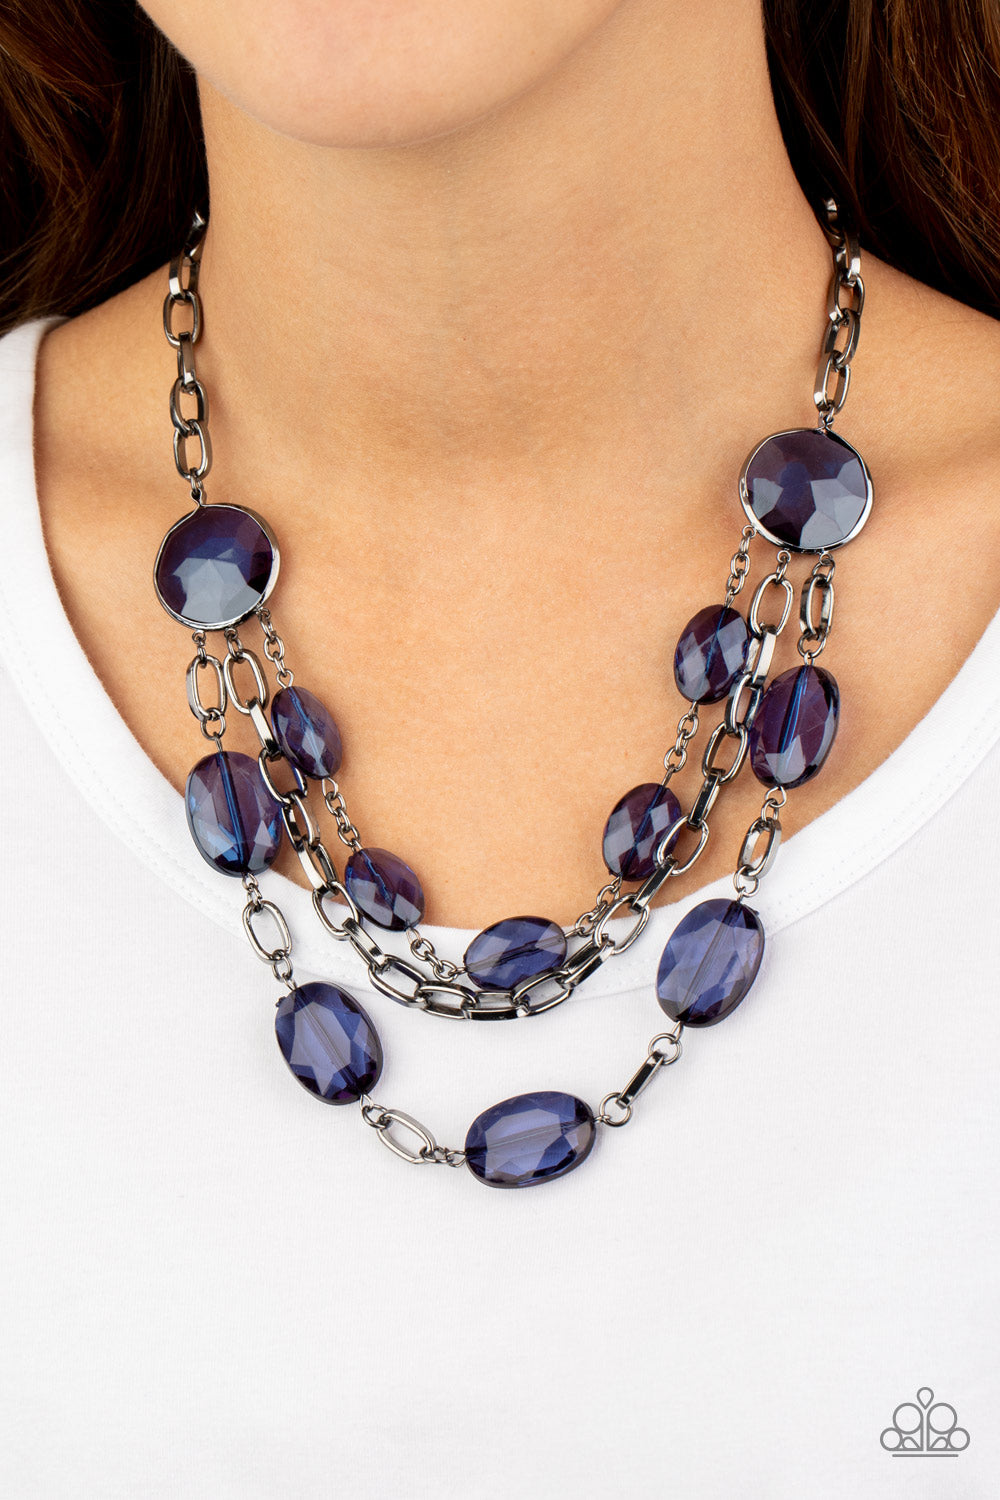 I Need a GLOW-cation - Blue Necklace - Paparazzi Accessories